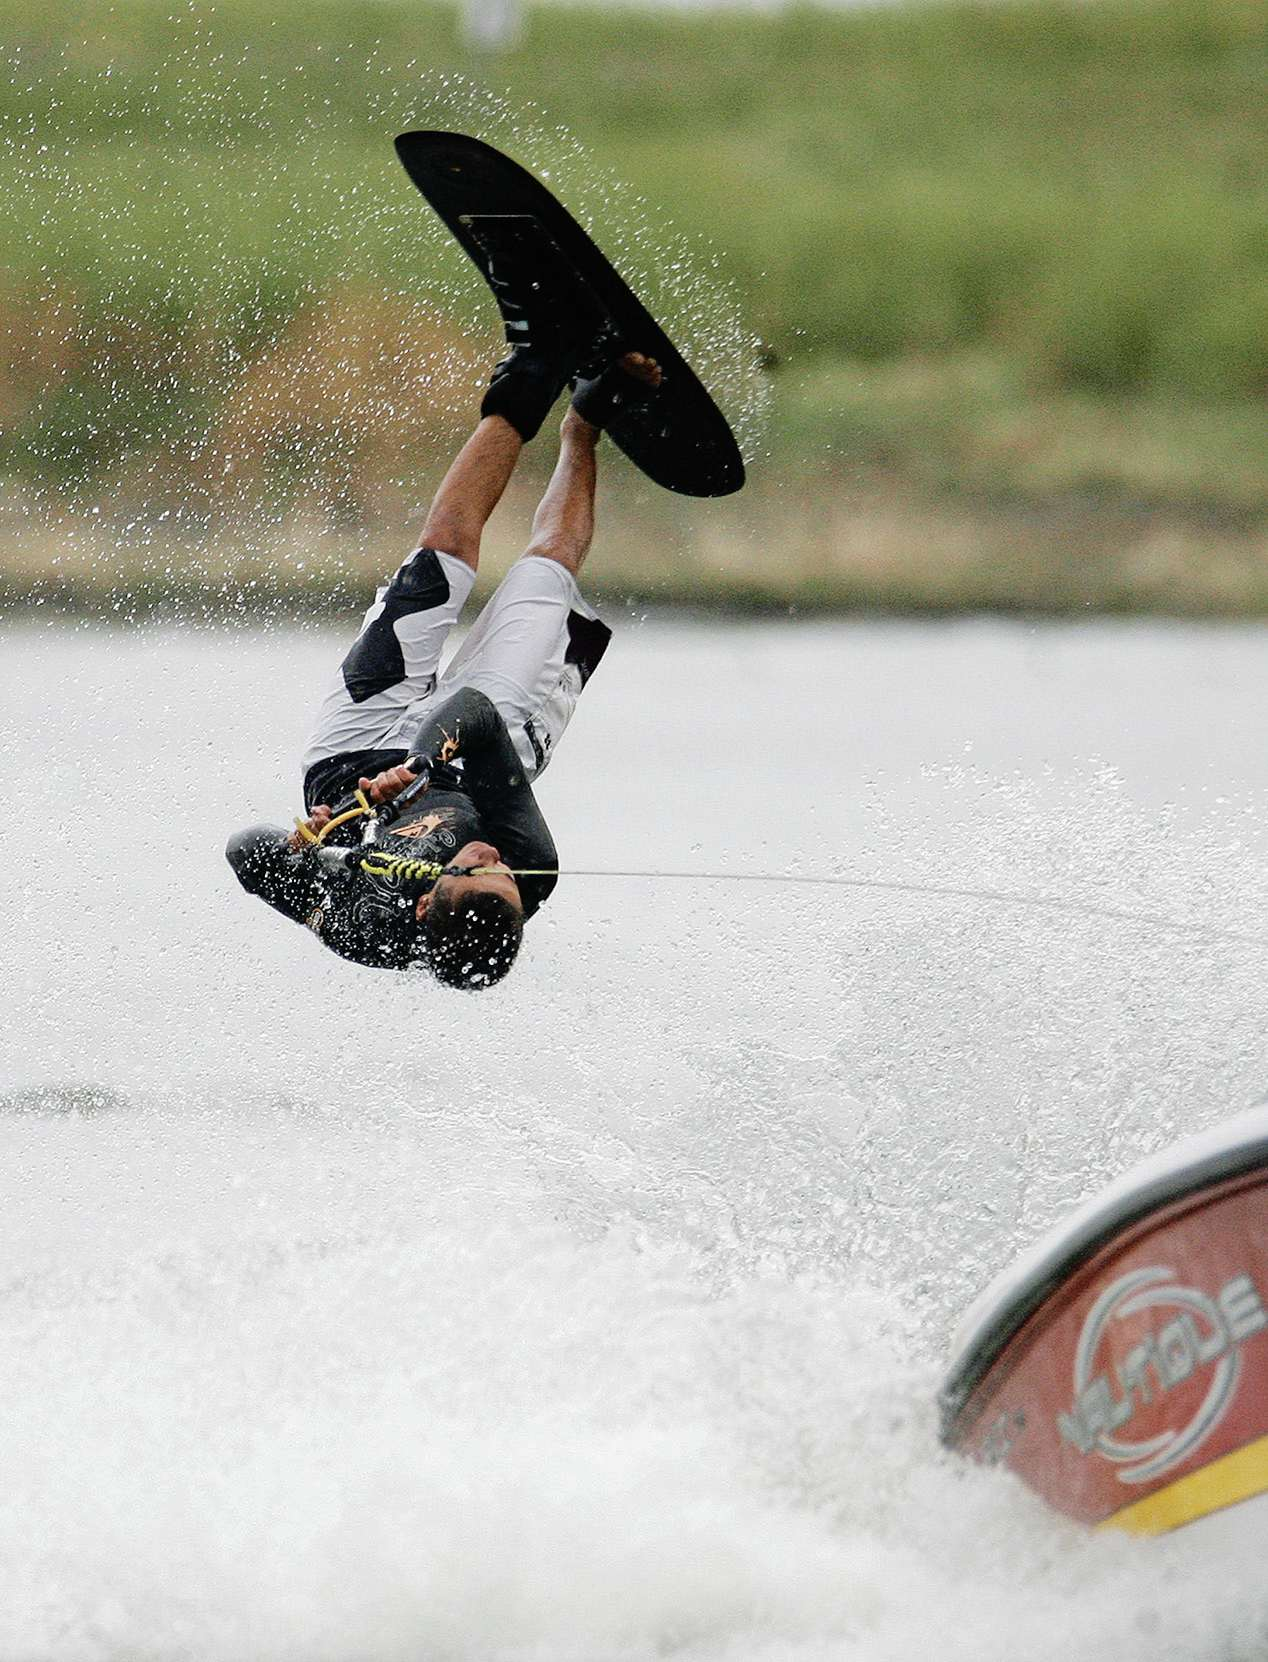 Cole grant wakeboarding - mid-air.